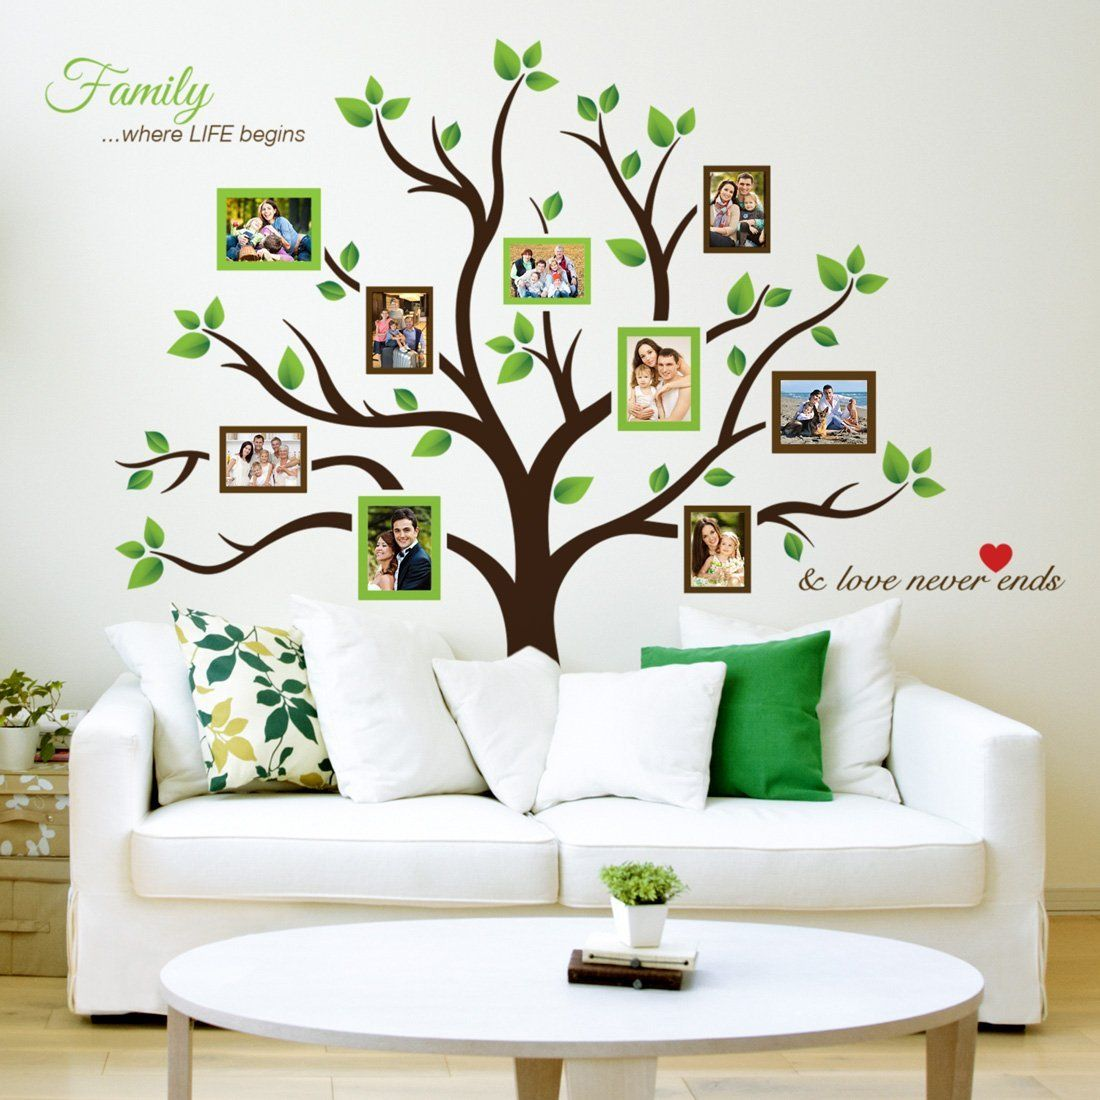 Amazon.com - Timber Artbox Large Family Tree Photo Frames Wall Decal ...